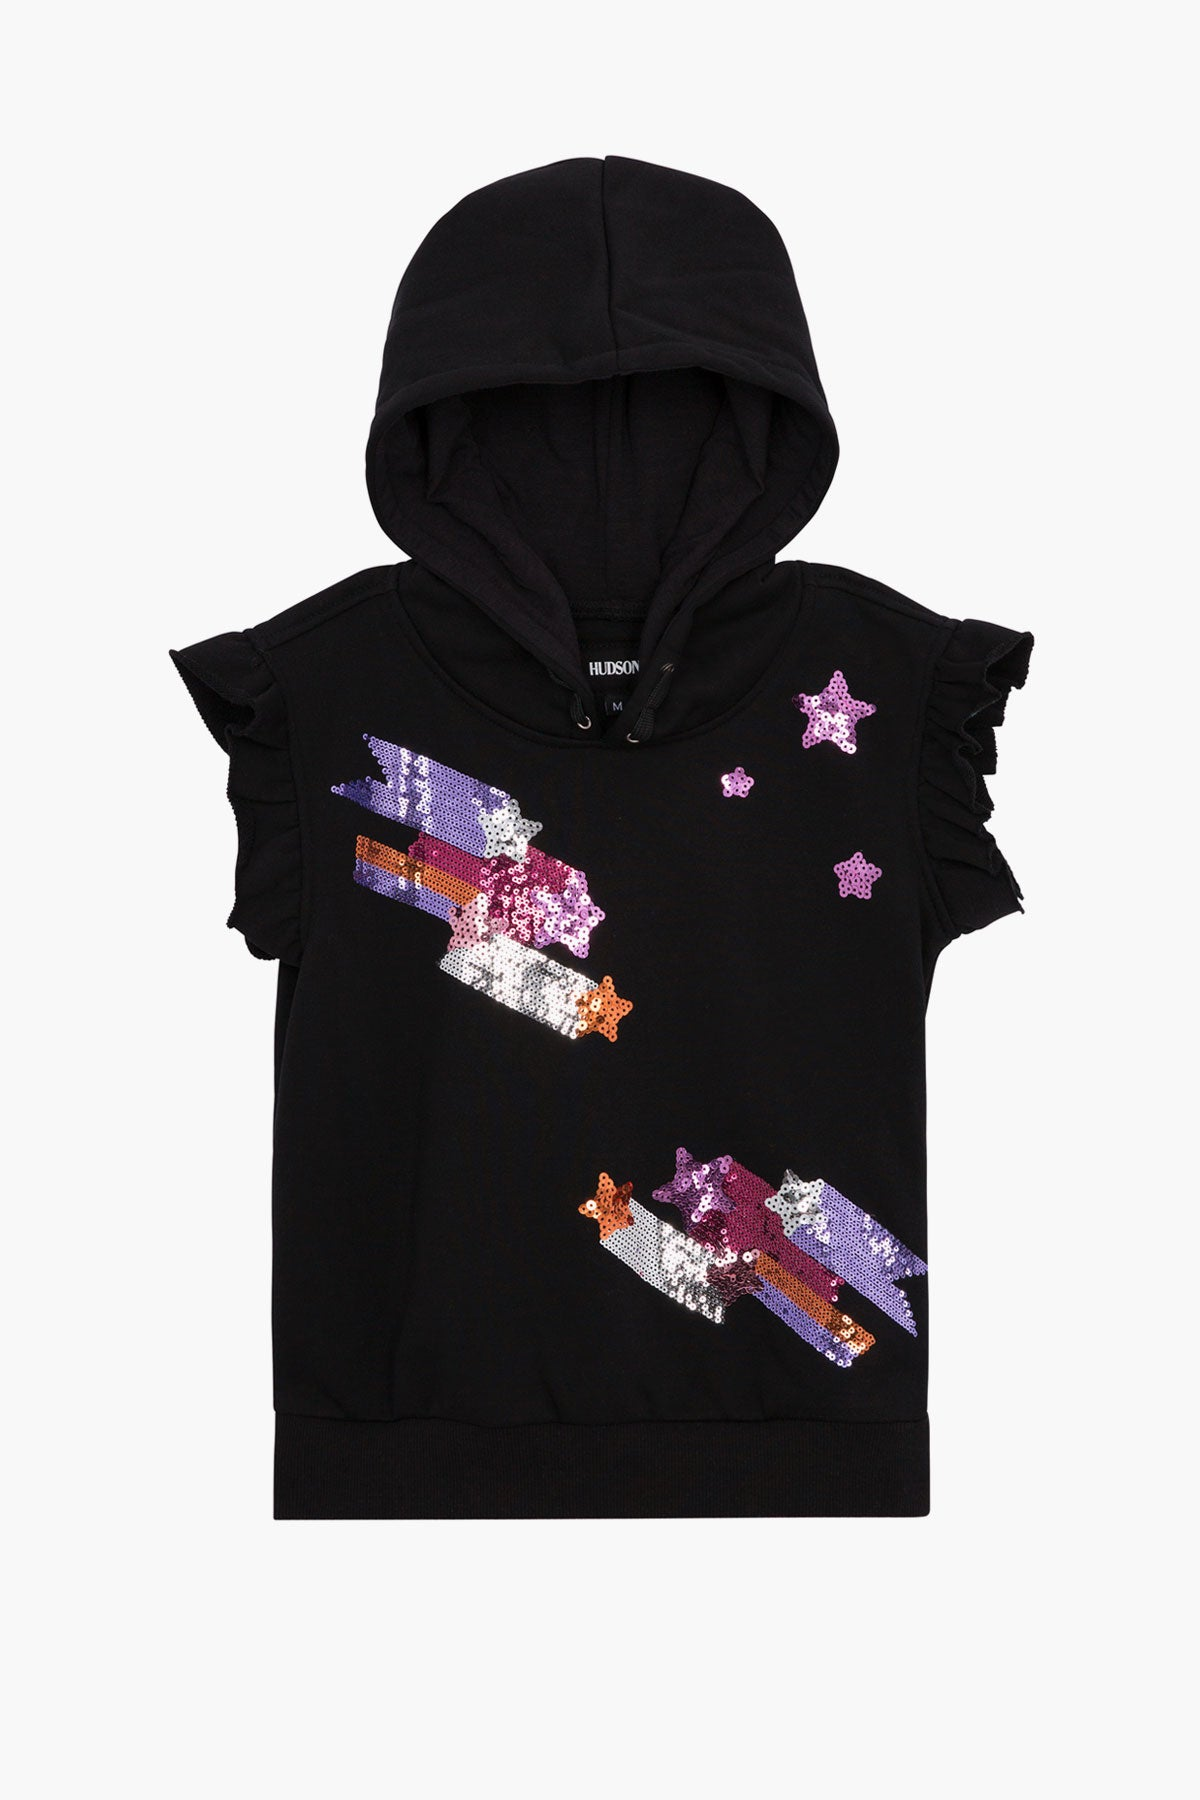 Hudson Shooting Star Girls Hoodie